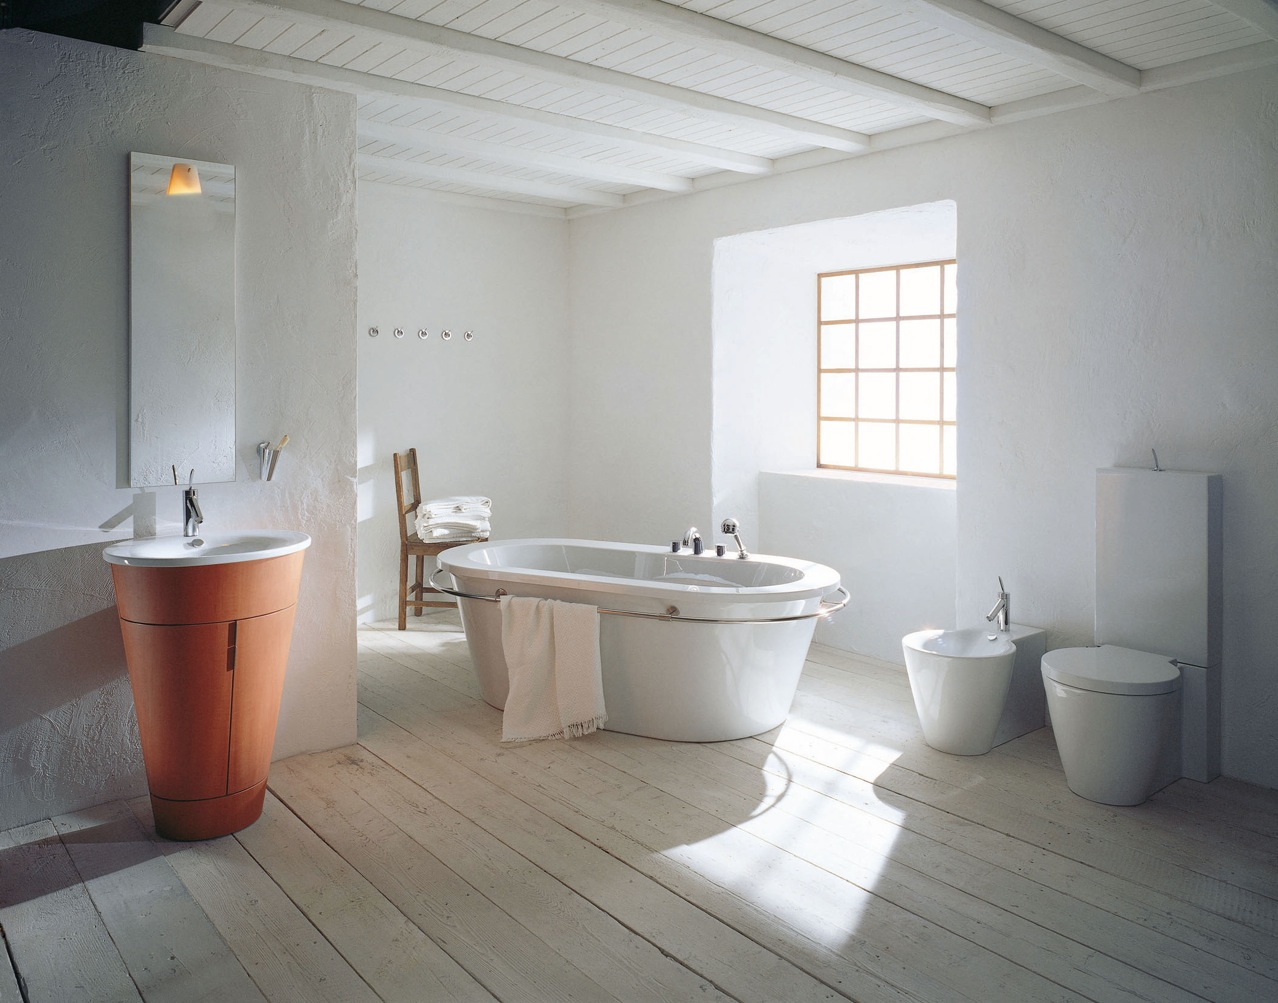 Philipe starck rustic modern bathroom decor for Contemporary bathroom accessories